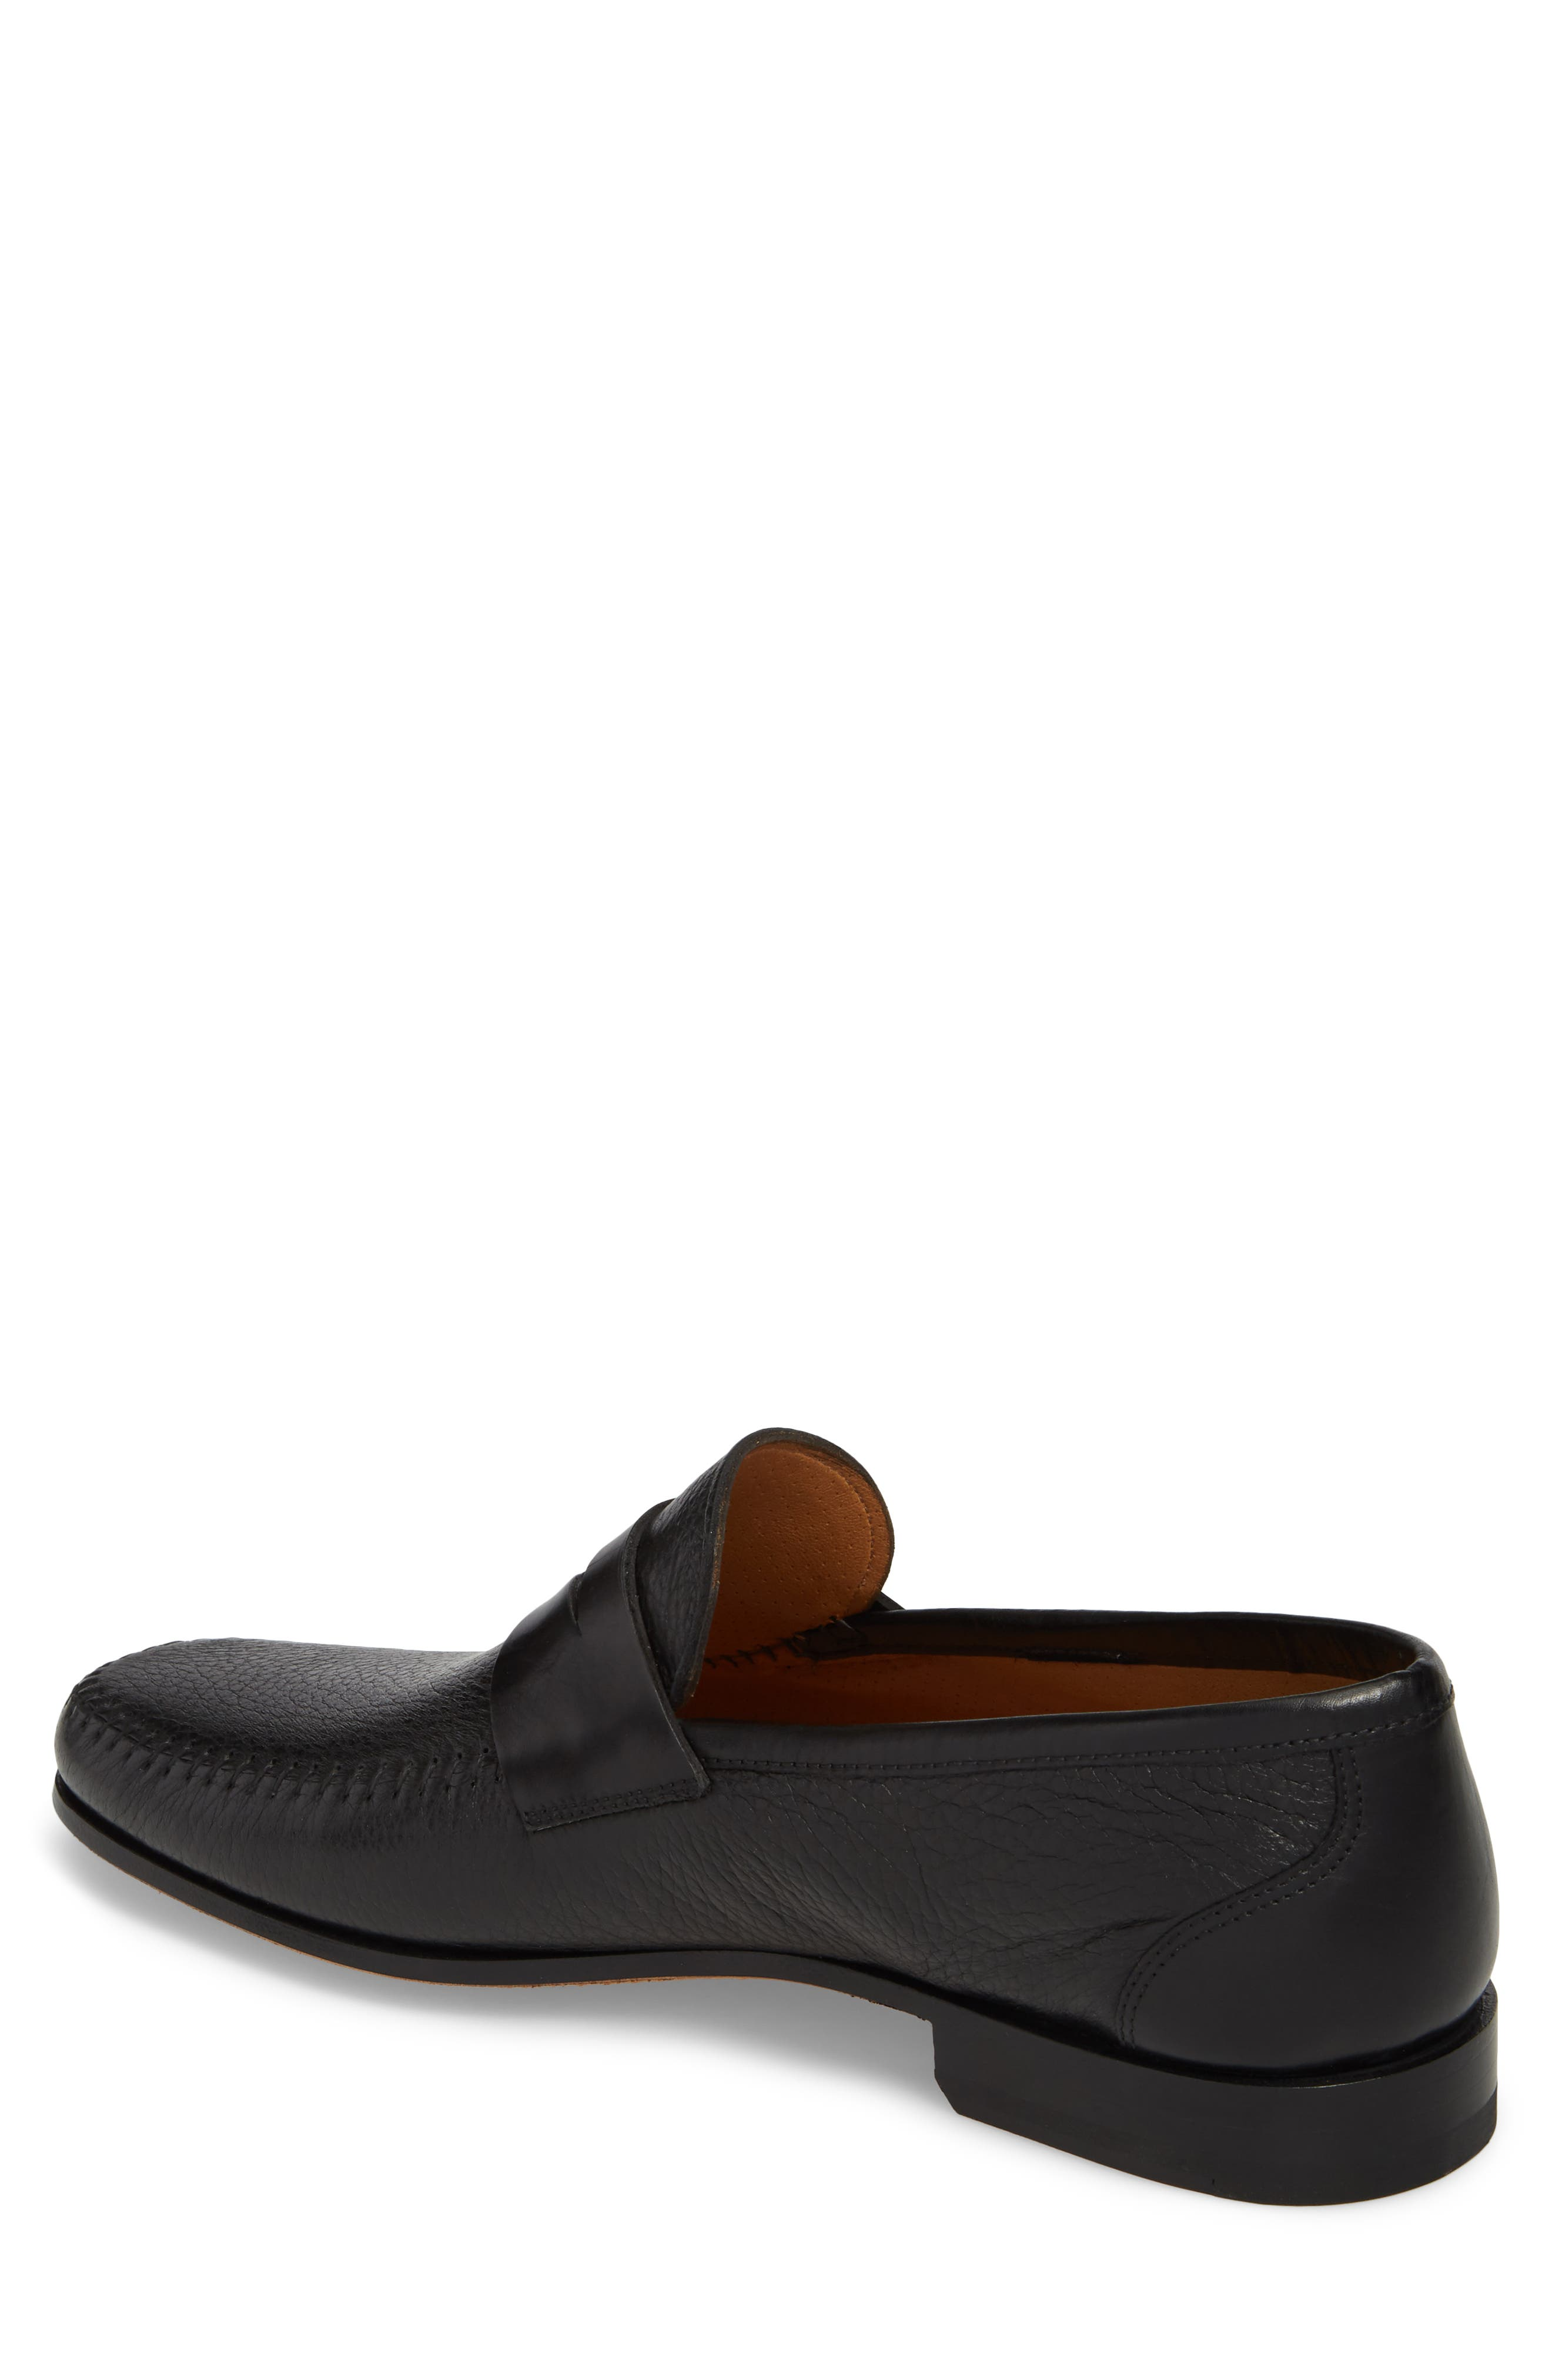 MAGNANNI,                             Ramos Moc Toe Penny Loafer,                             Alternate thumbnail 2, color,                             BLACK/BLACK LEATHER